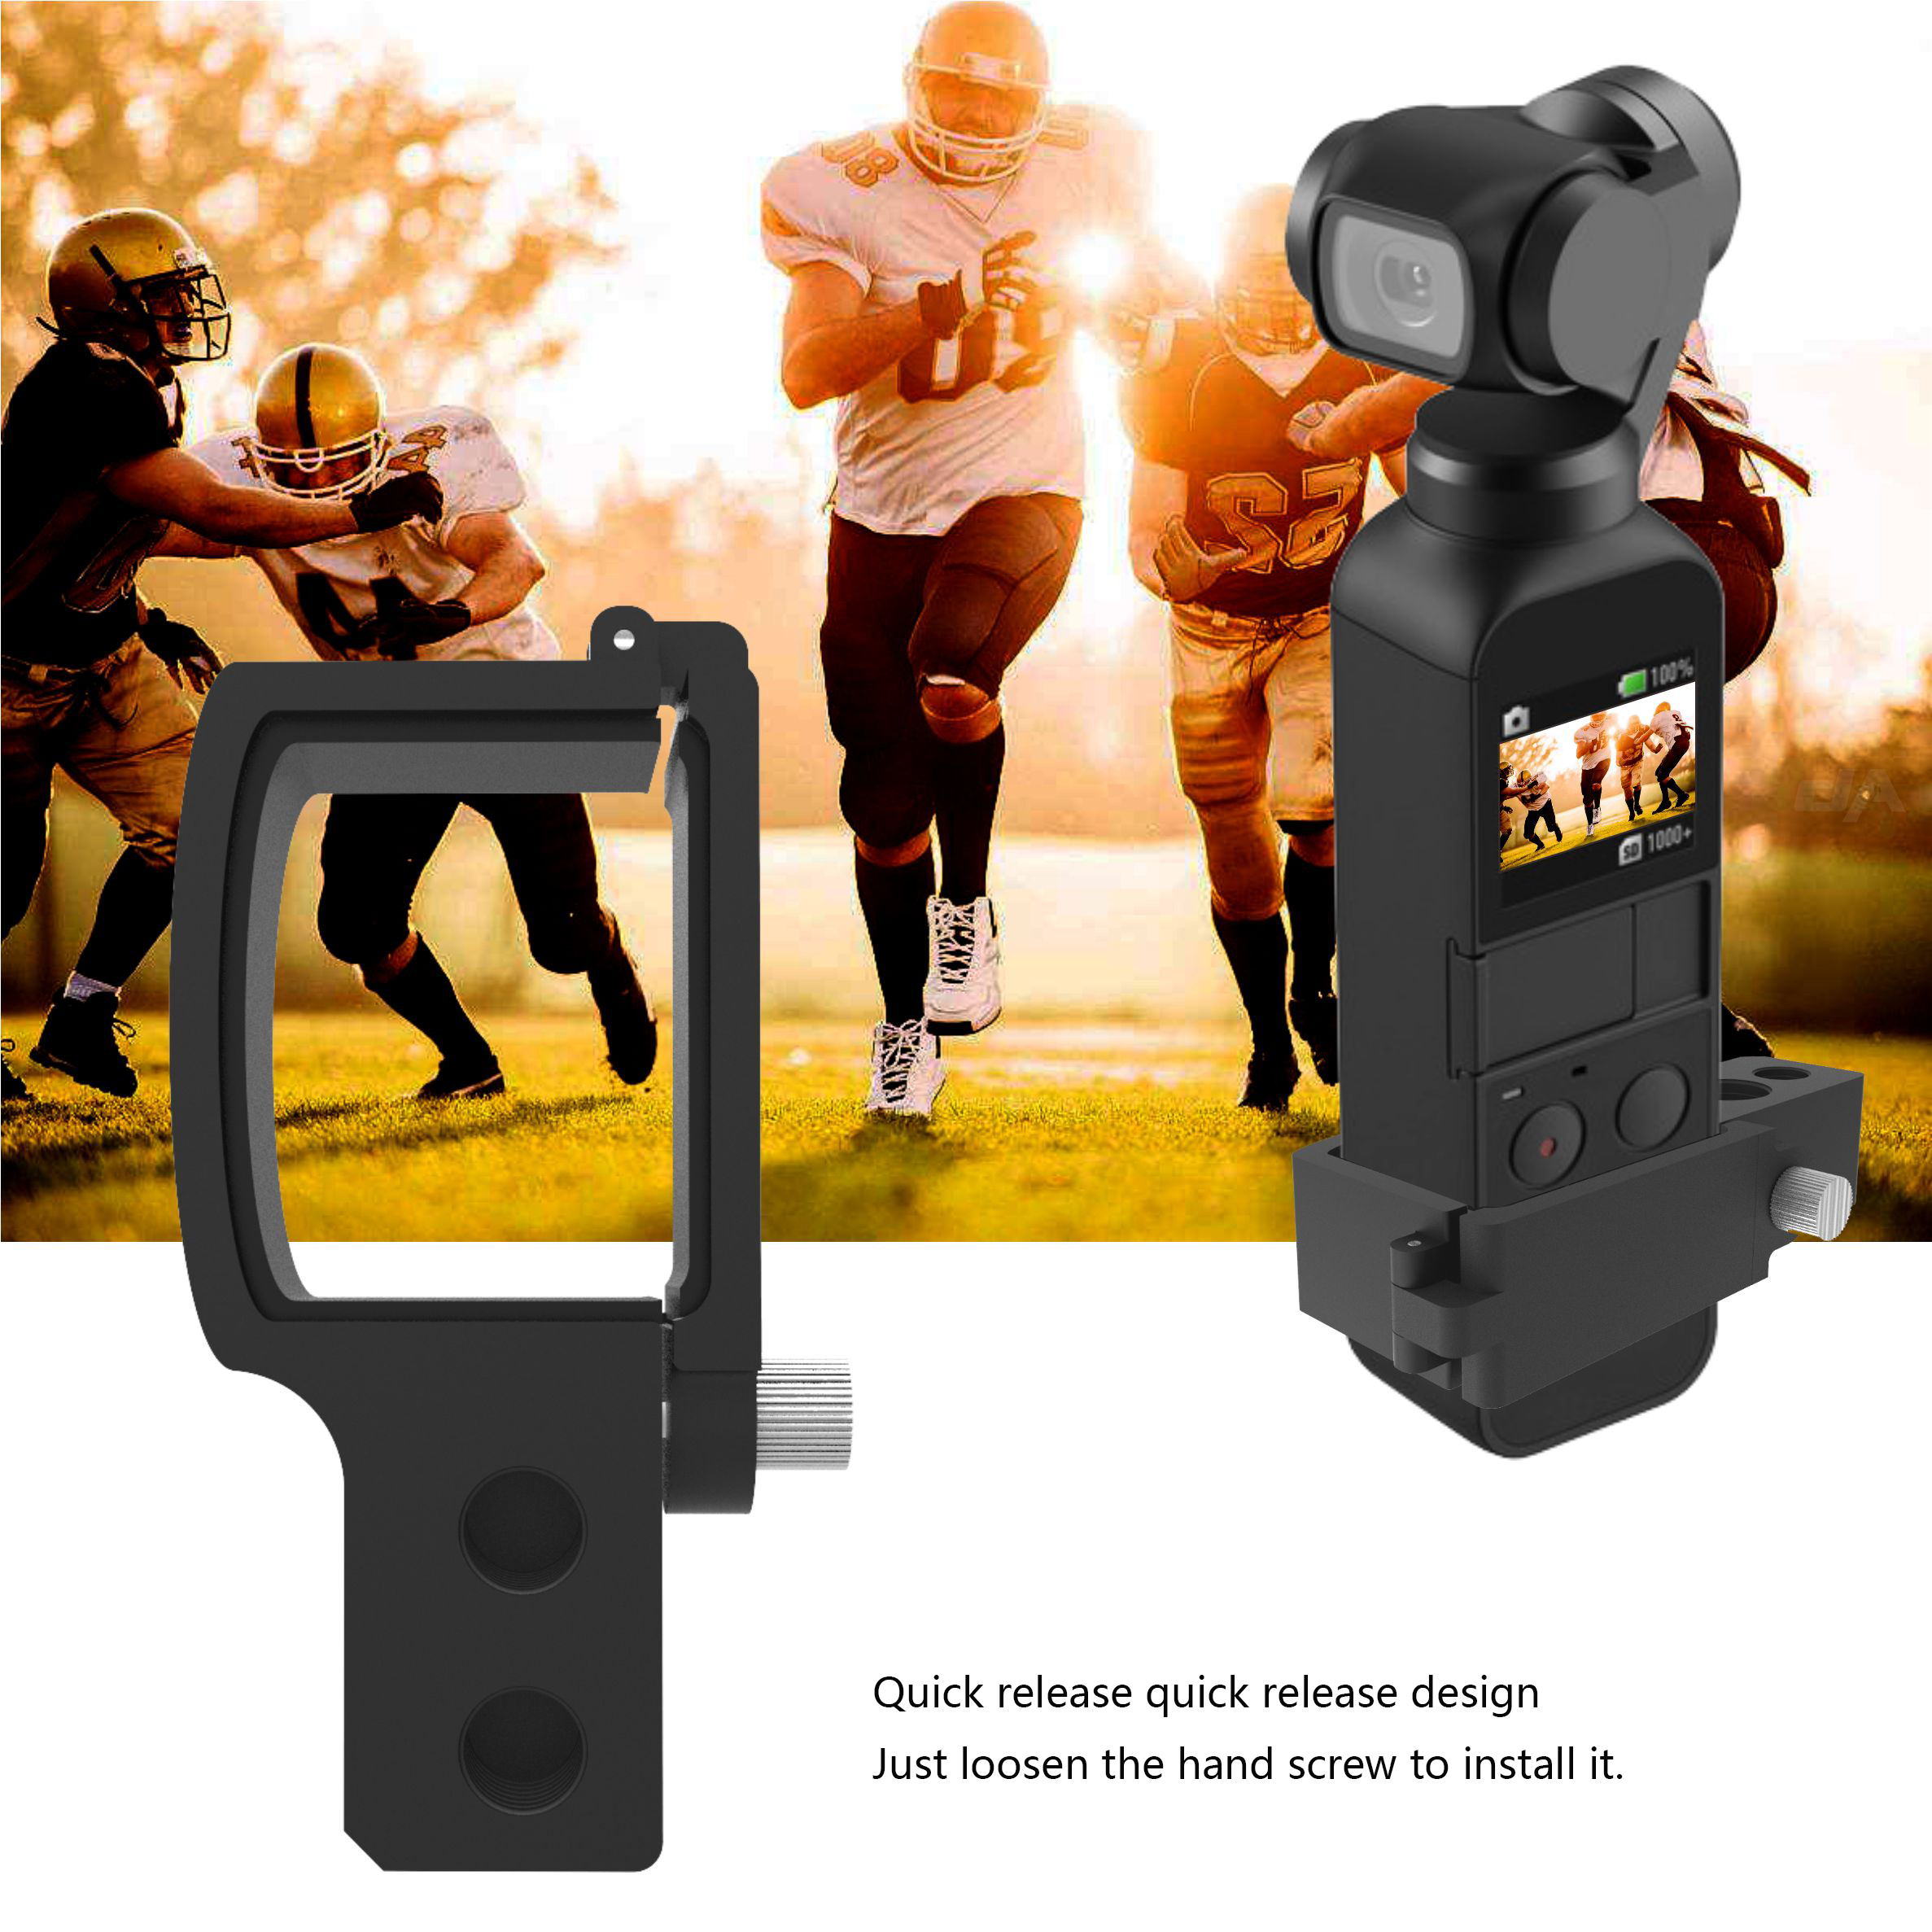 Quick-release DJI Osmo Pocket Gimbal Camera CNC Extension Module Connection DJI OSMO POCKET Expansion Adapter block Accessories 1